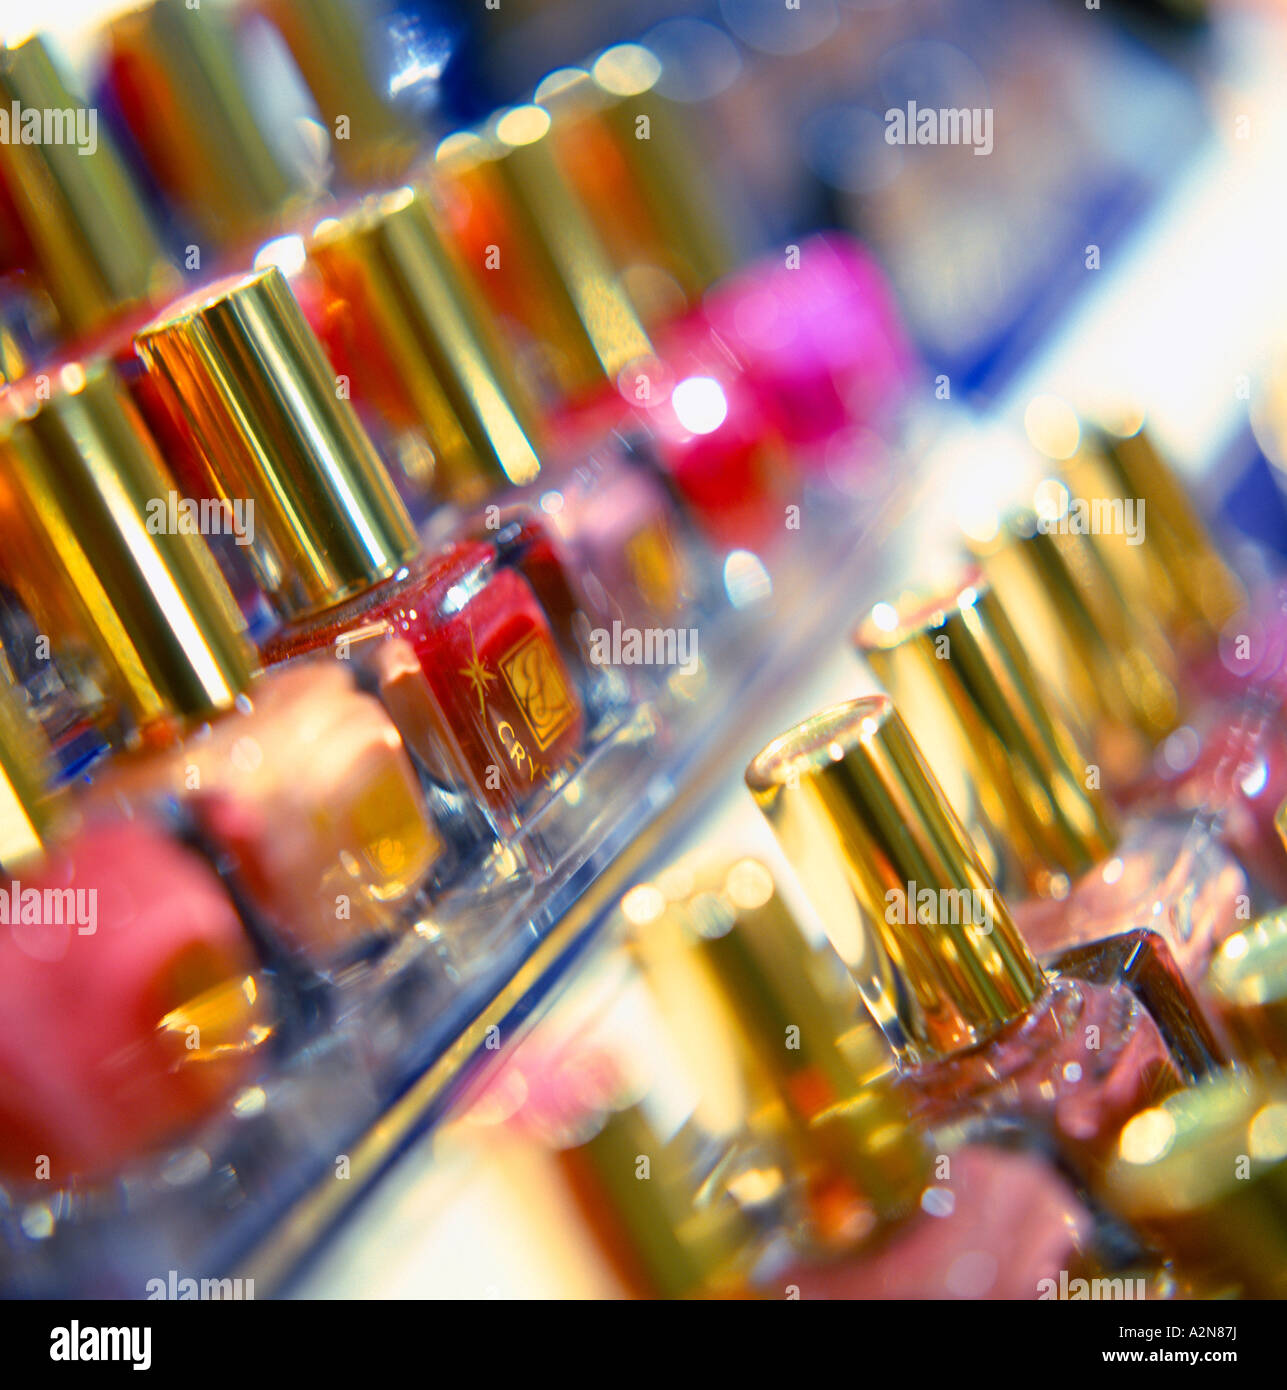 red nail polish stockfotos red nail polish bilder alamy. Black Bedroom Furniture Sets. Home Design Ideas